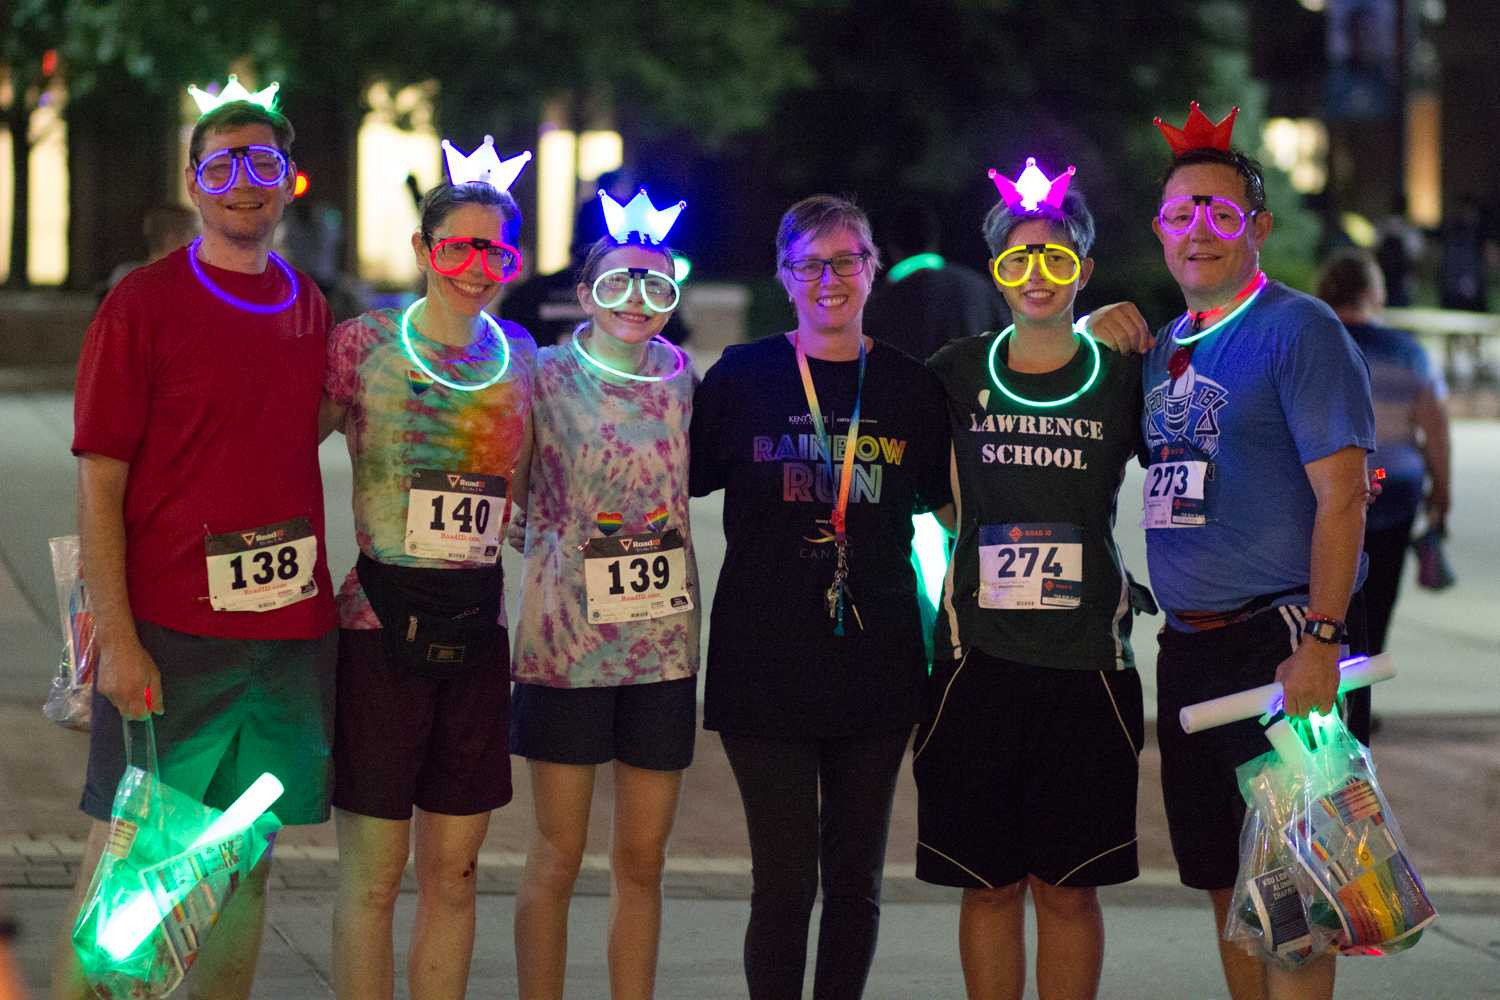 (Left to Right) Blaine Vesley, Vanessa Vesley, Nora Vesley, Kim Homsher, Angelika Marsh and Jeff Marsh pose for a photo at the Rainbow Run 5k event that the Kent State LGBTQ Center put together outside the Kent State Student Center on Friday, Sept. 21, 2018. Photo by Sophia Adornetto.